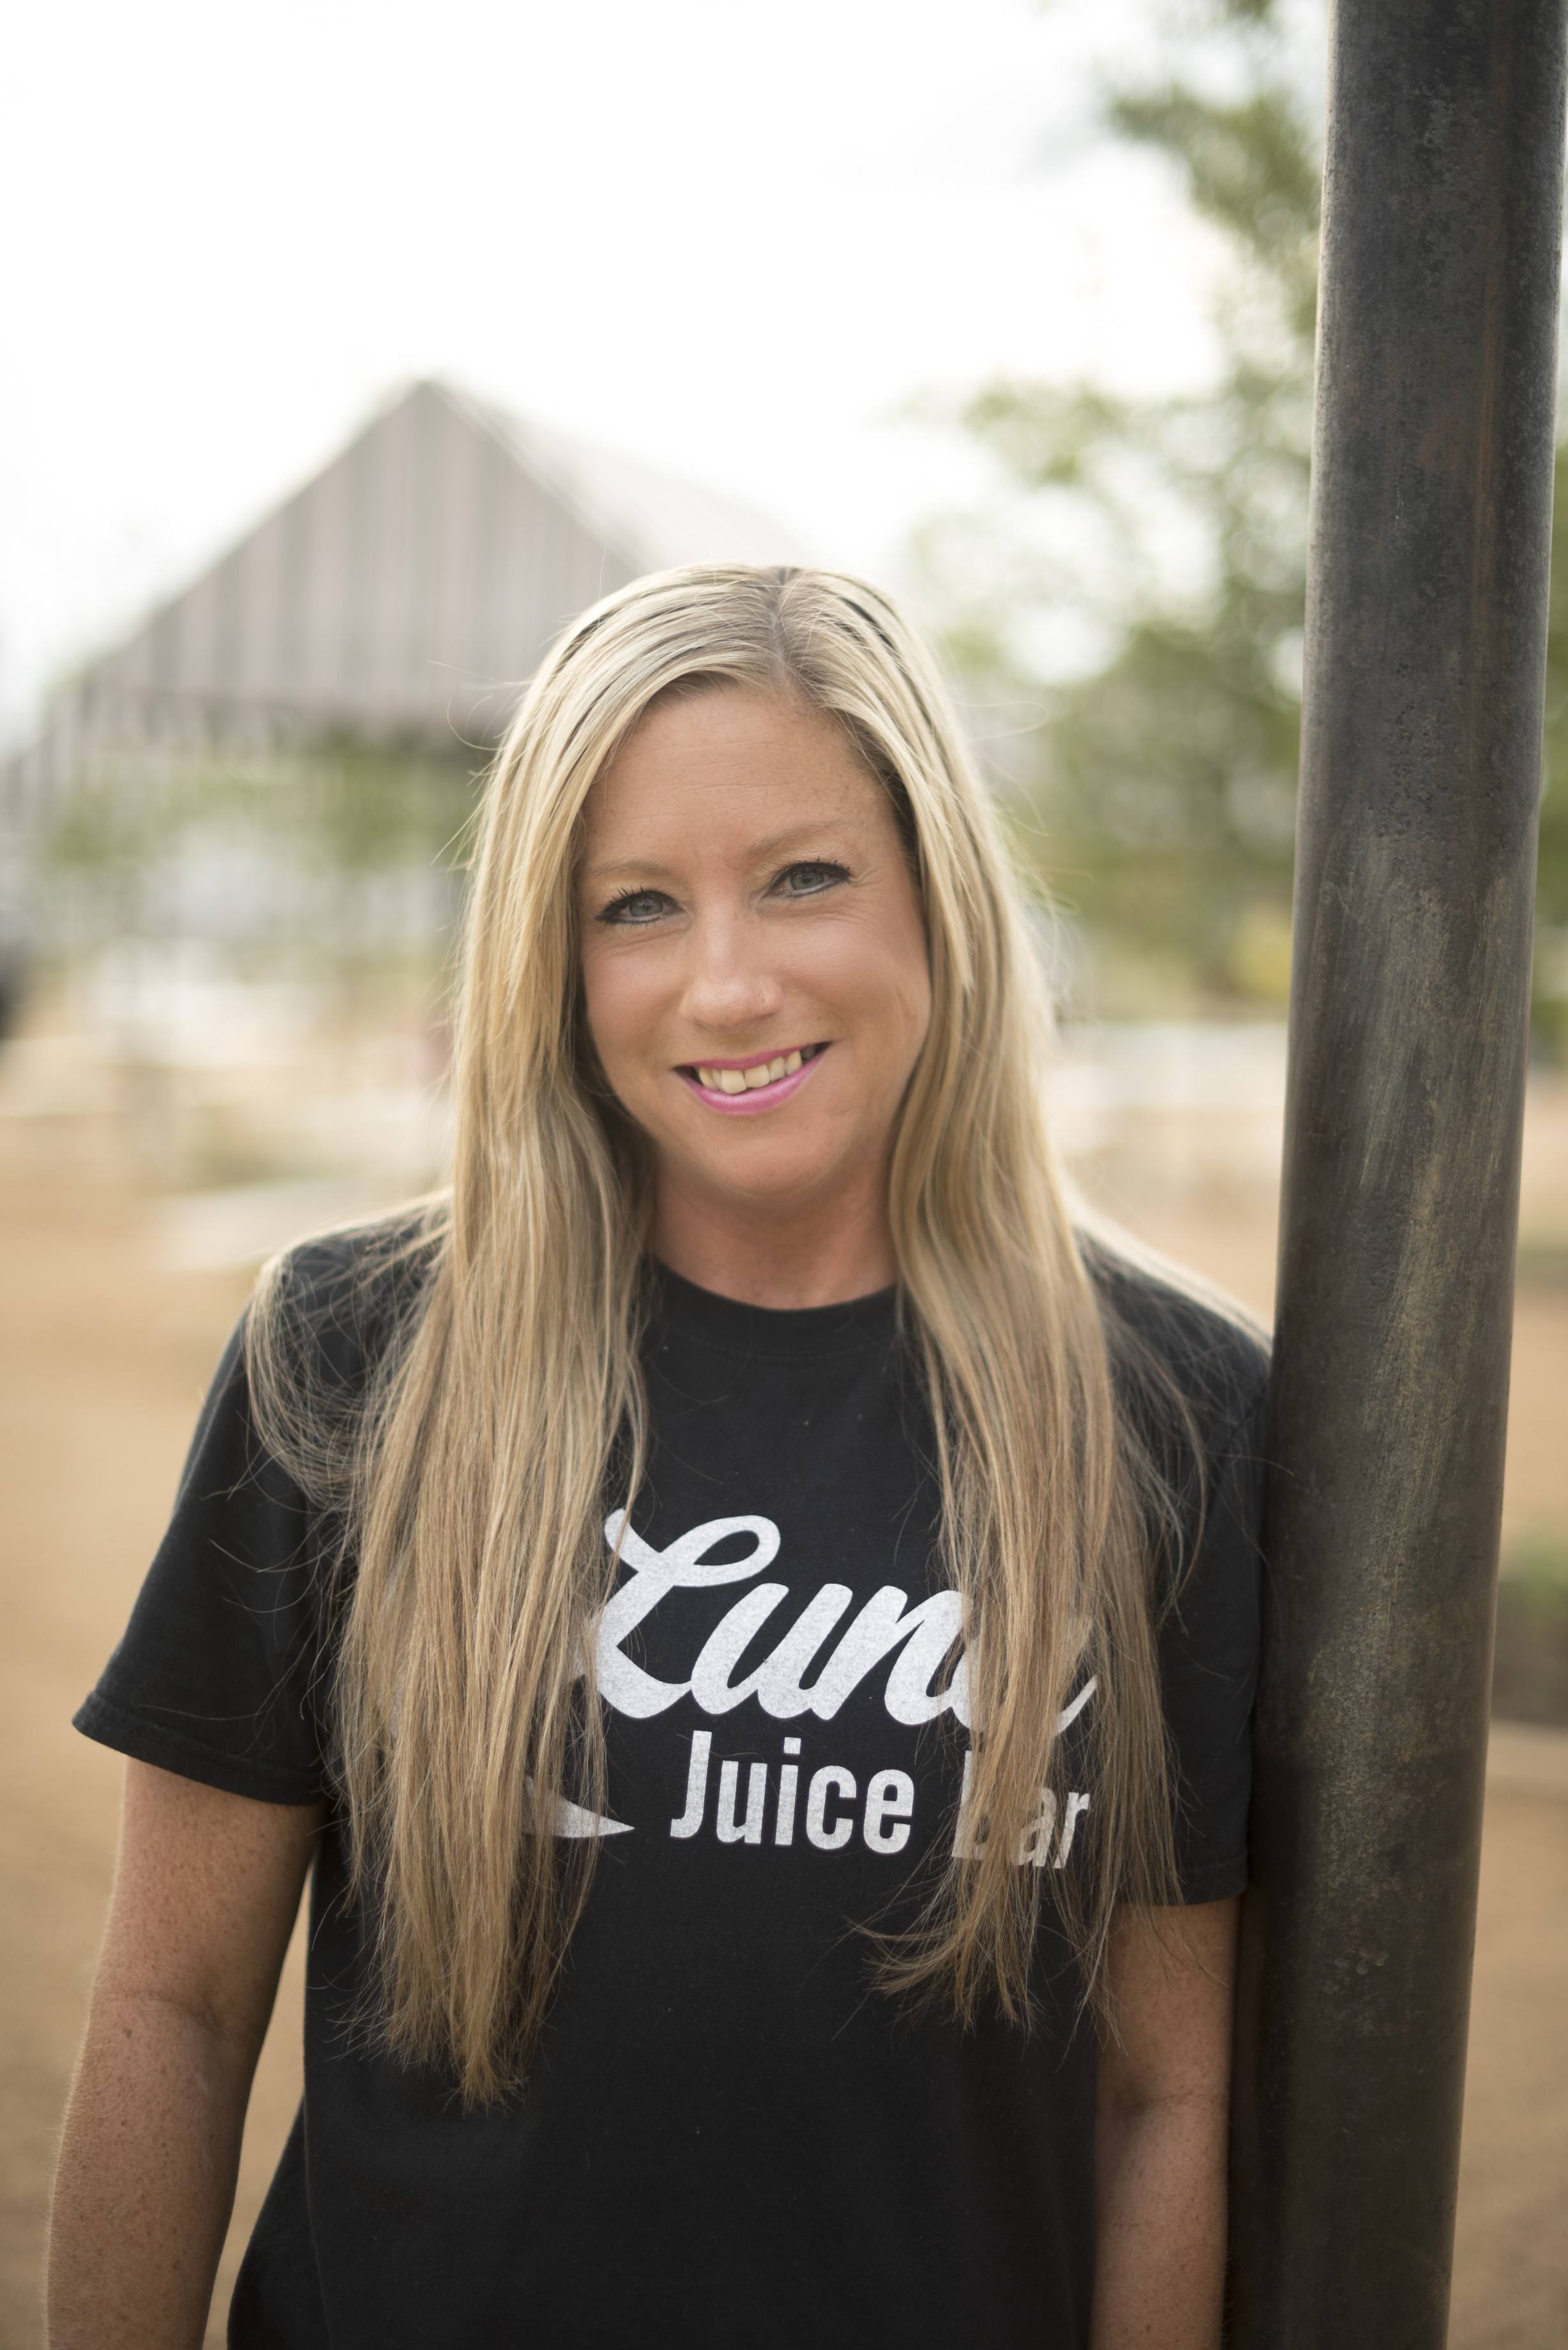 """""""No one outs Baby in the corner!"""" Amber is our baby! SHe's the sweet face you see on the trizzy (food truck) from day to day. She is an expert watermelon blender, she makes us all laugh and is a ninja at self defense, so....don't mess with this one! She joined the Luna team when she was in the early stages of recovery and she has shown up and showed out every day since then. She is an amazing miracle and we see God's providence in her life with each step!"""